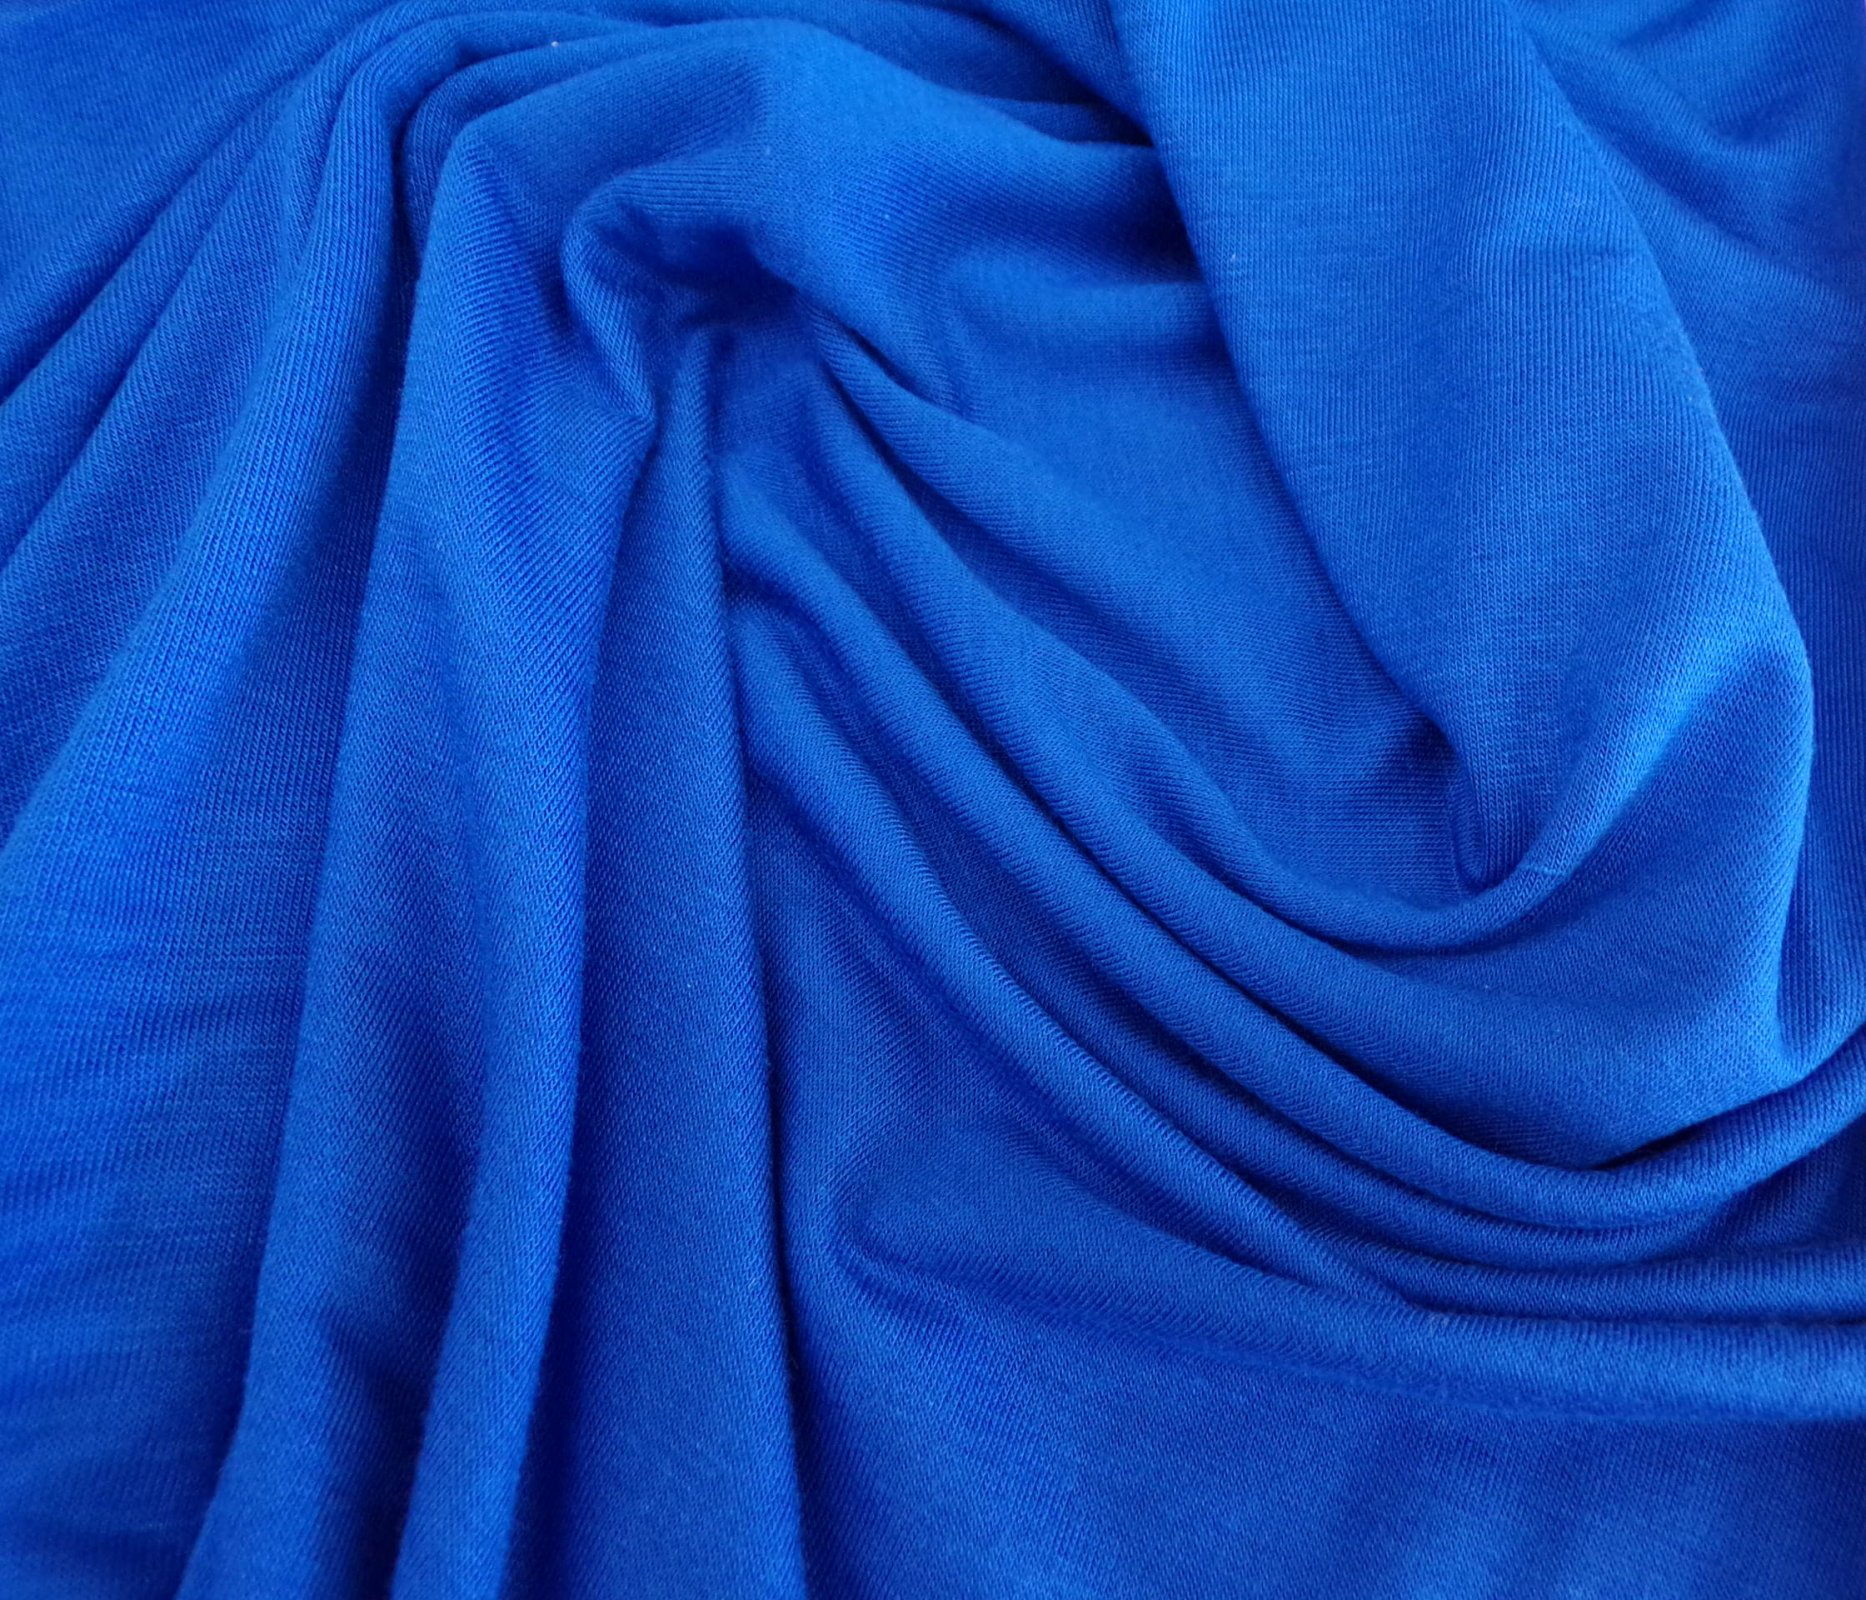 Cotton Jersey - Bright Blue